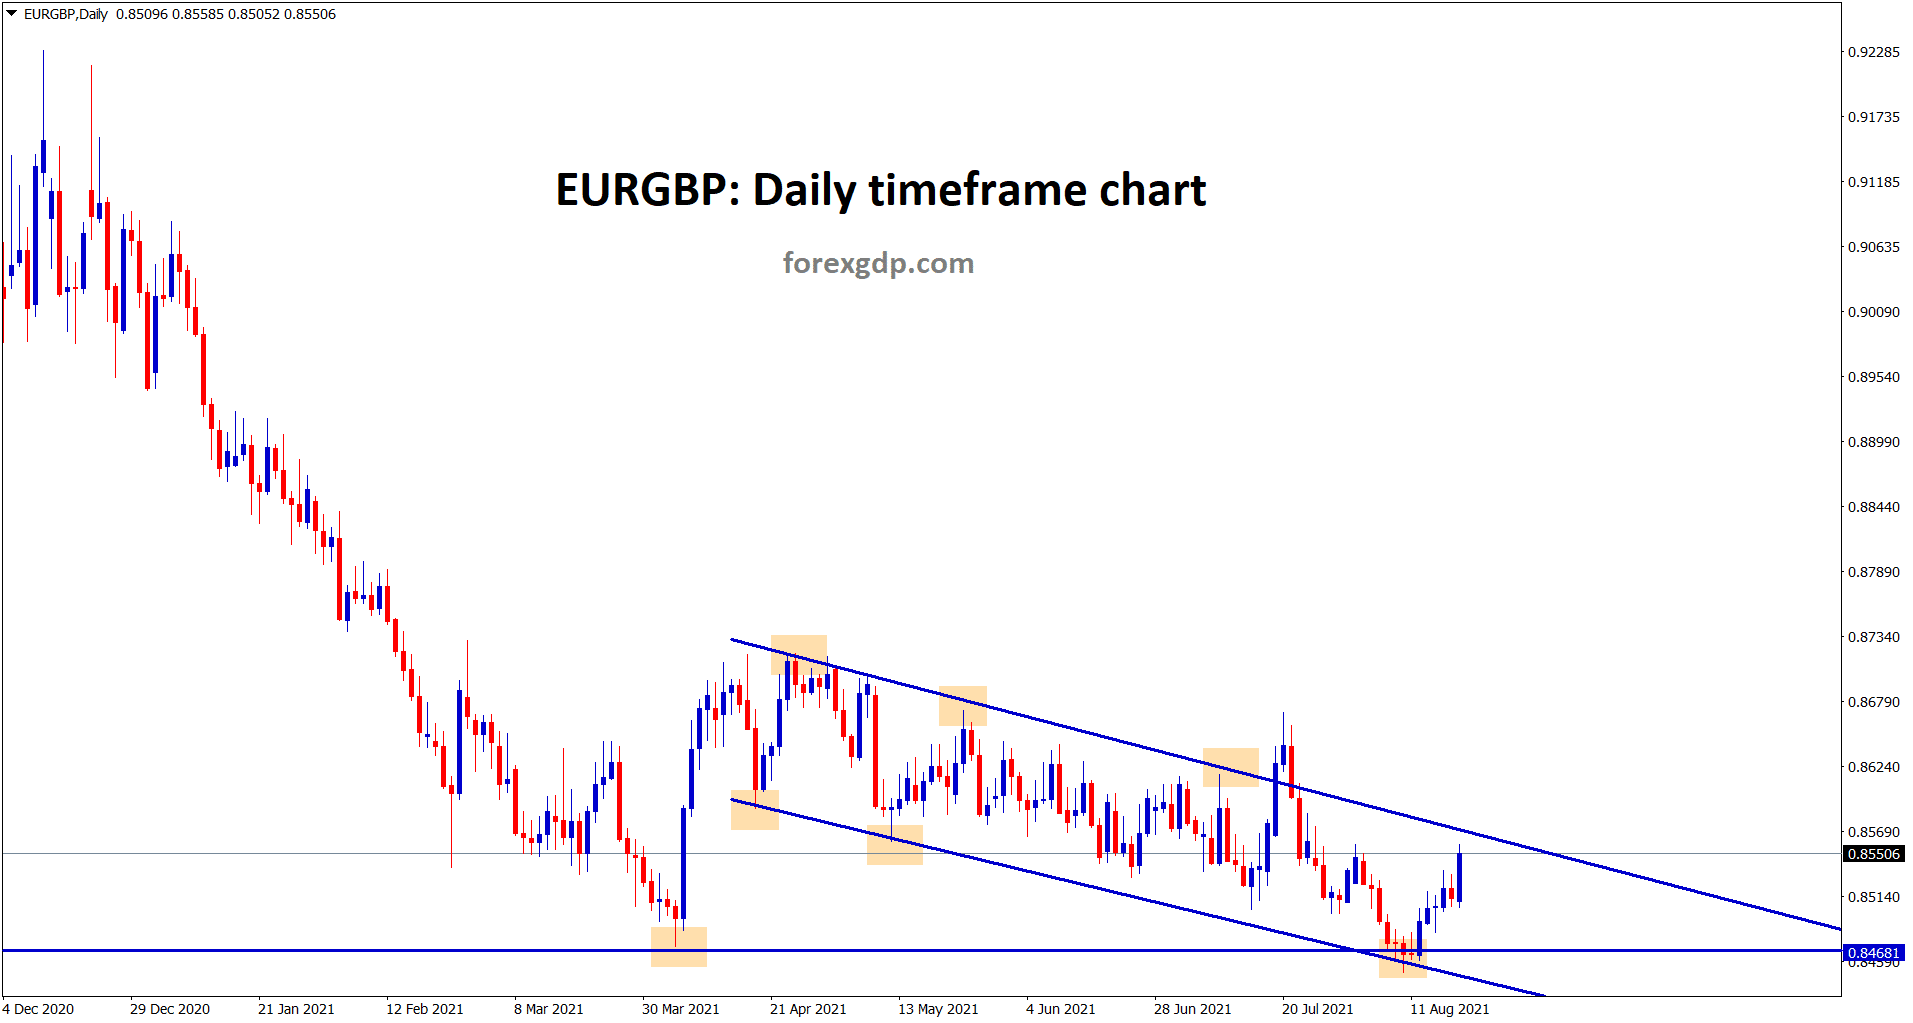 EURGBP bounced back from the horizontal support and now goig to reach the lower high of the descending channel line